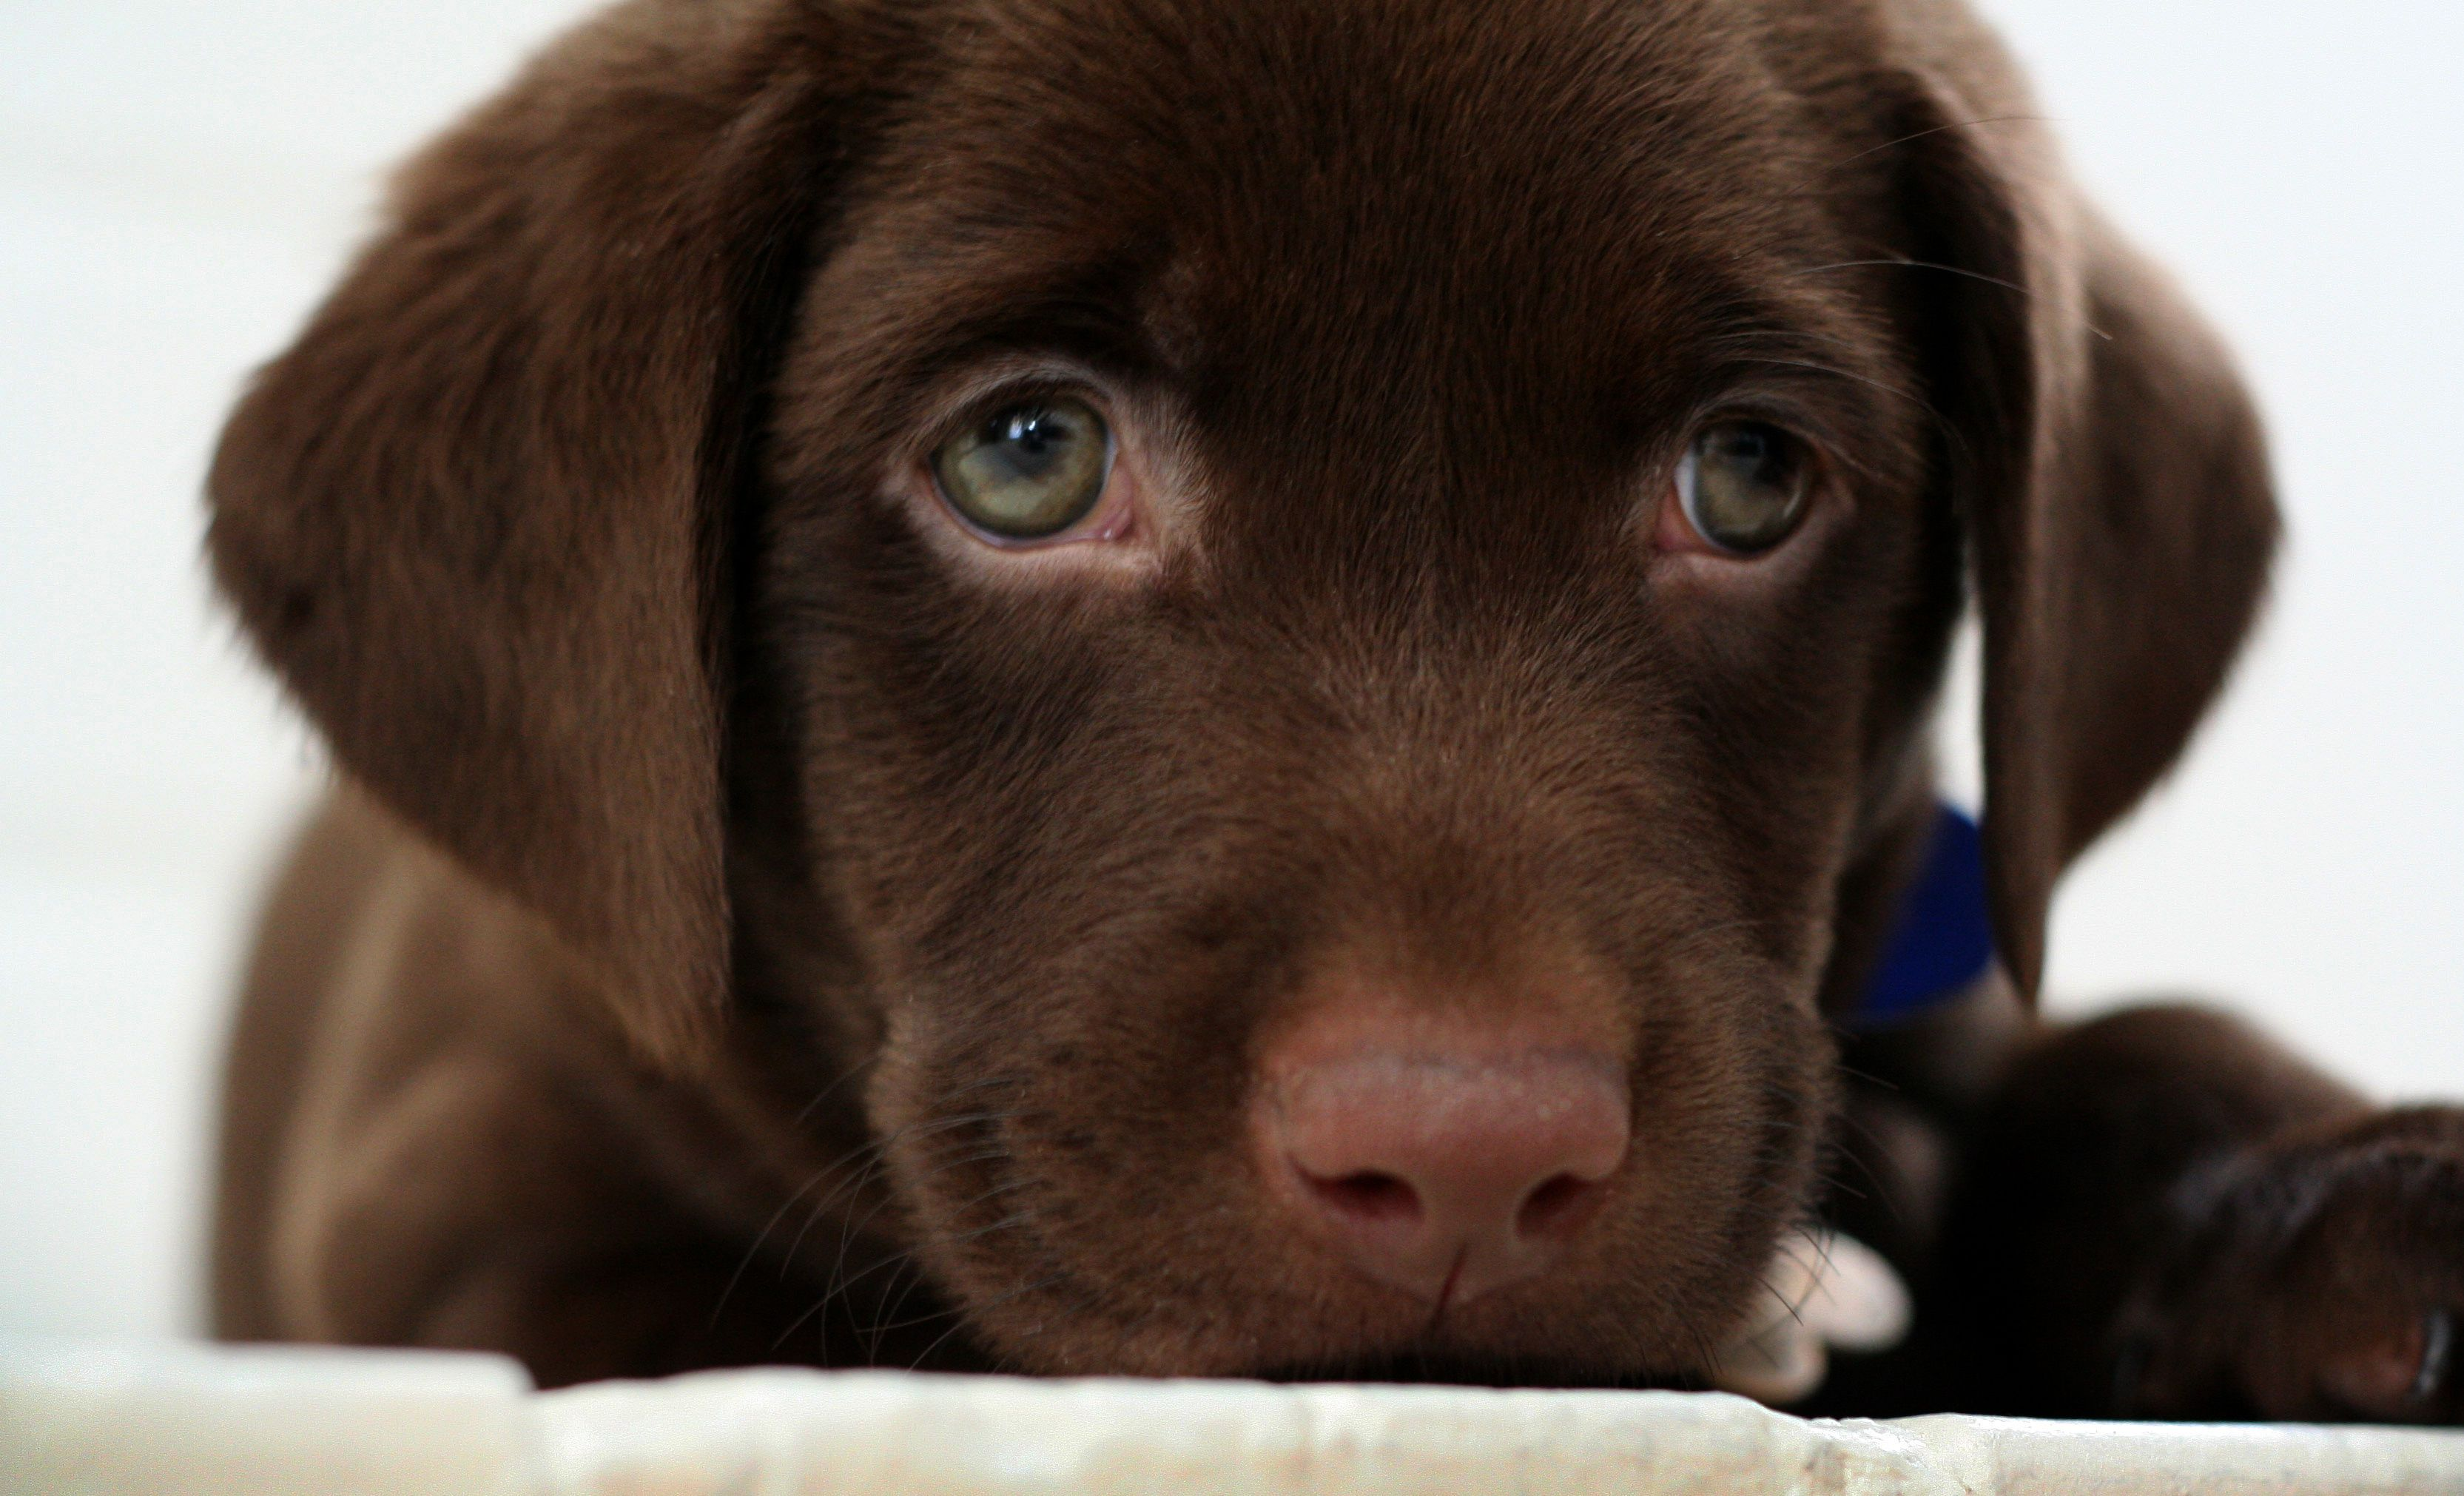 The Cutest Puppies In The World 18 Photos Chocolate Lab Puppies Lab Puppy Puppy Dog Eyes